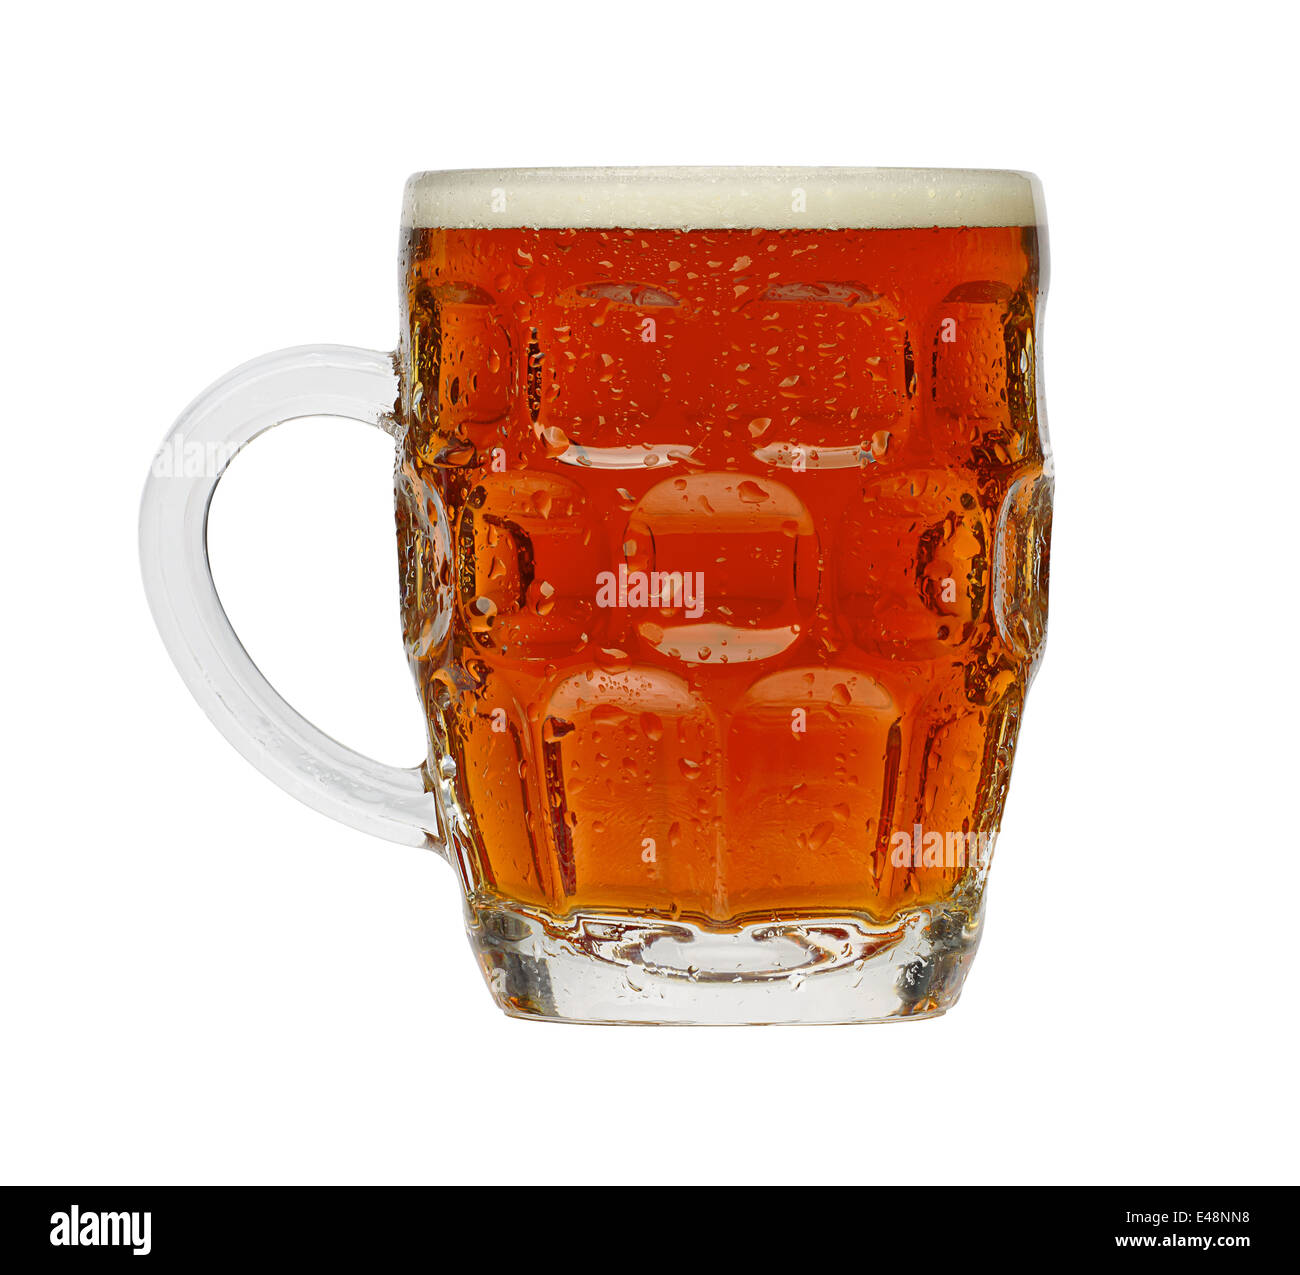 Traditional Pint of Beer in a typical British dimple glass - Stock Image